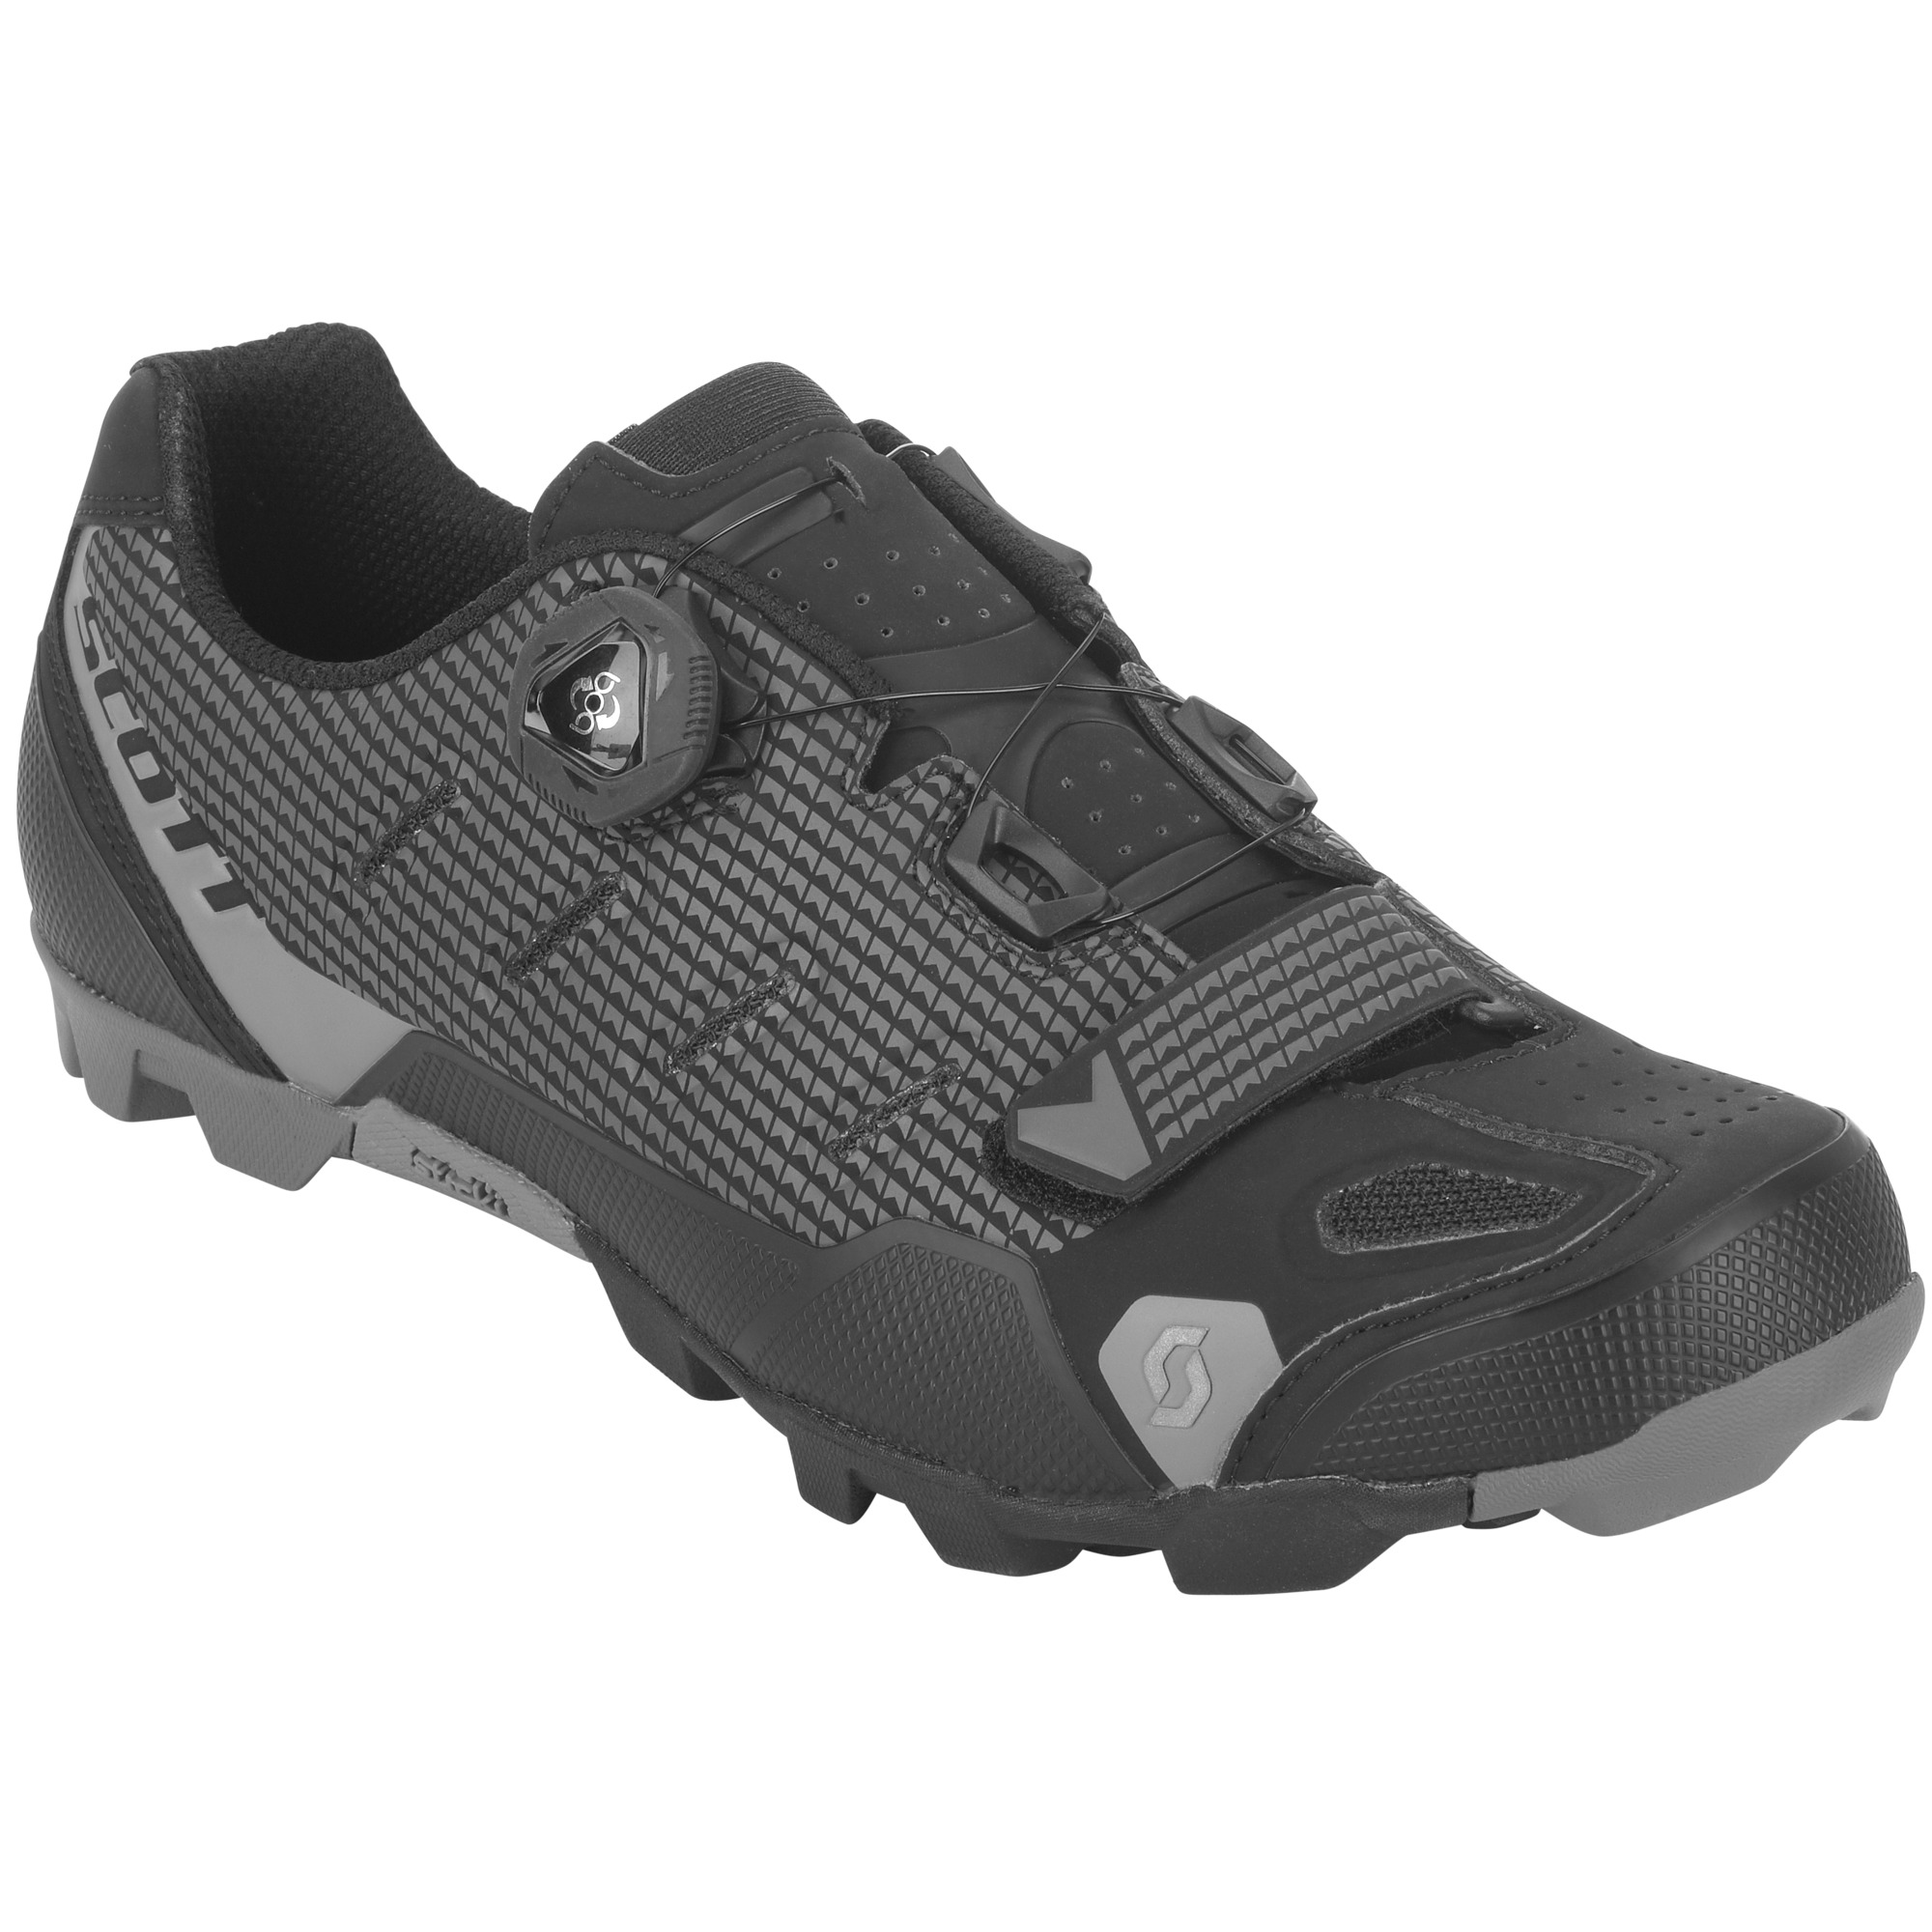 SCOTT Mtb Prowl-r Rs Shoe